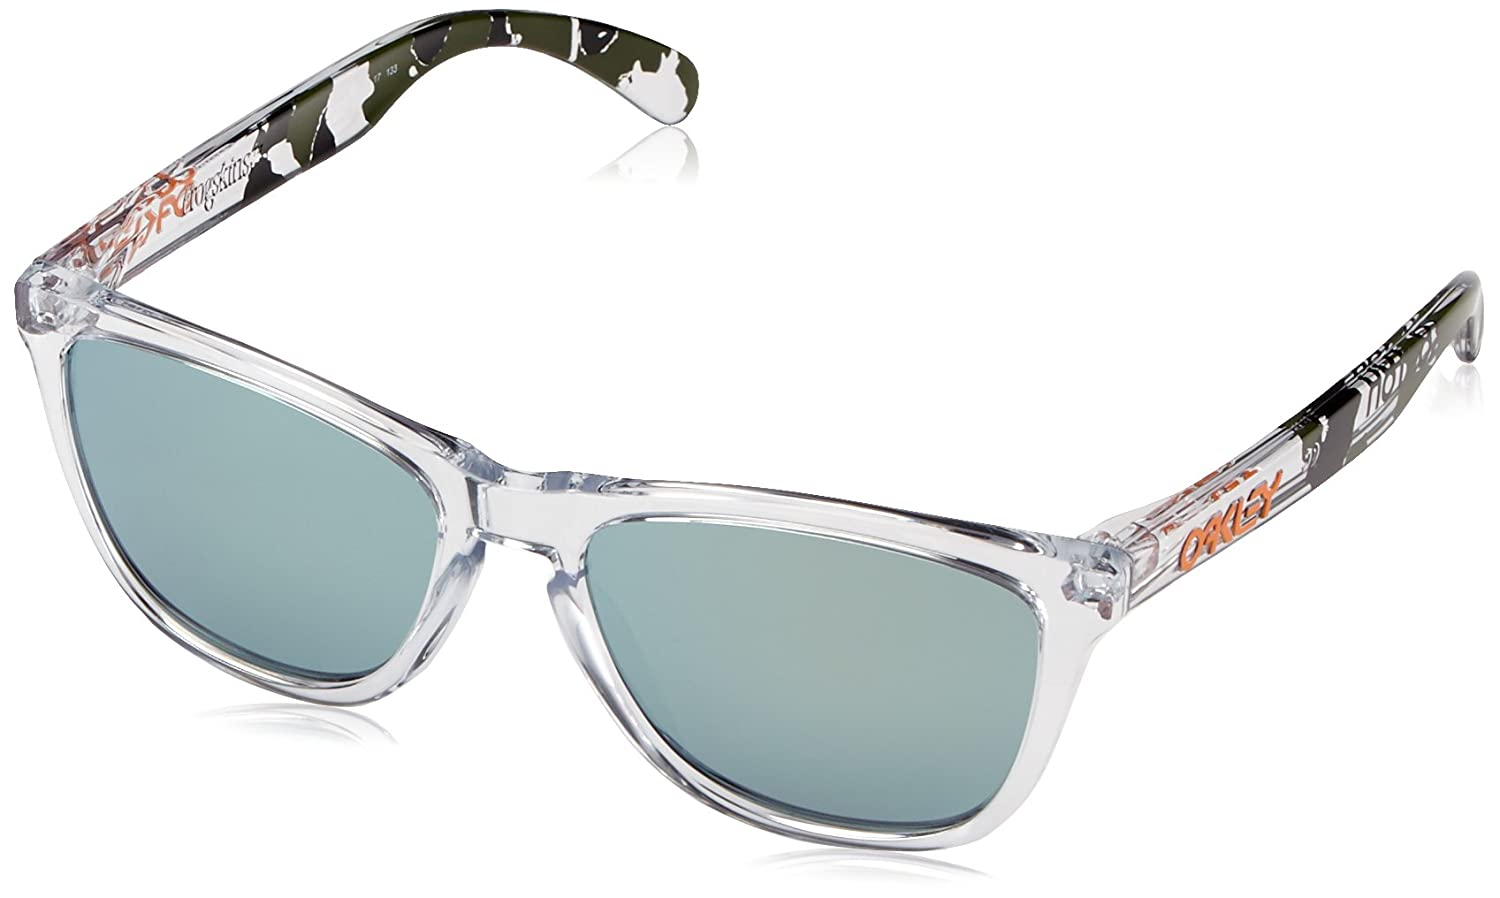 Amazon.com: Oakley Men's Frogskins Square Sunglasses, Clear, 55 mm: Clothing